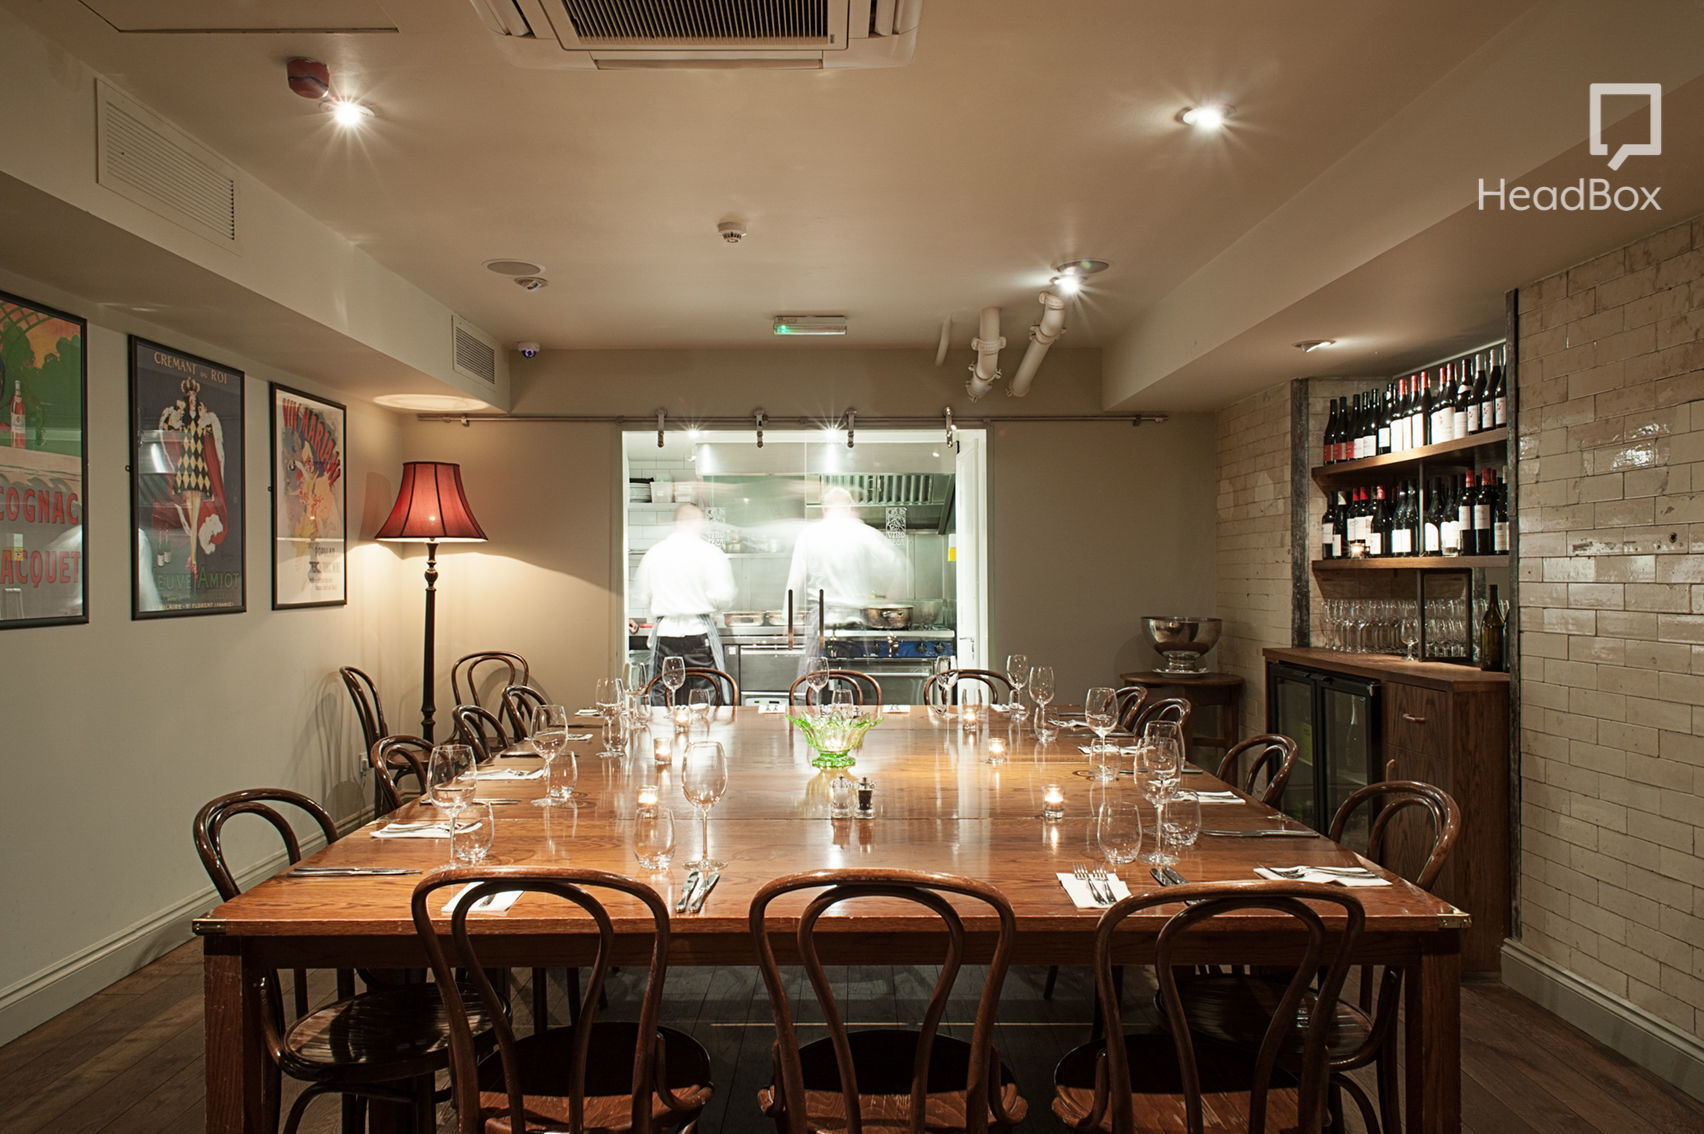 Private Room, lunch sitting, Vinoteca Farringdon